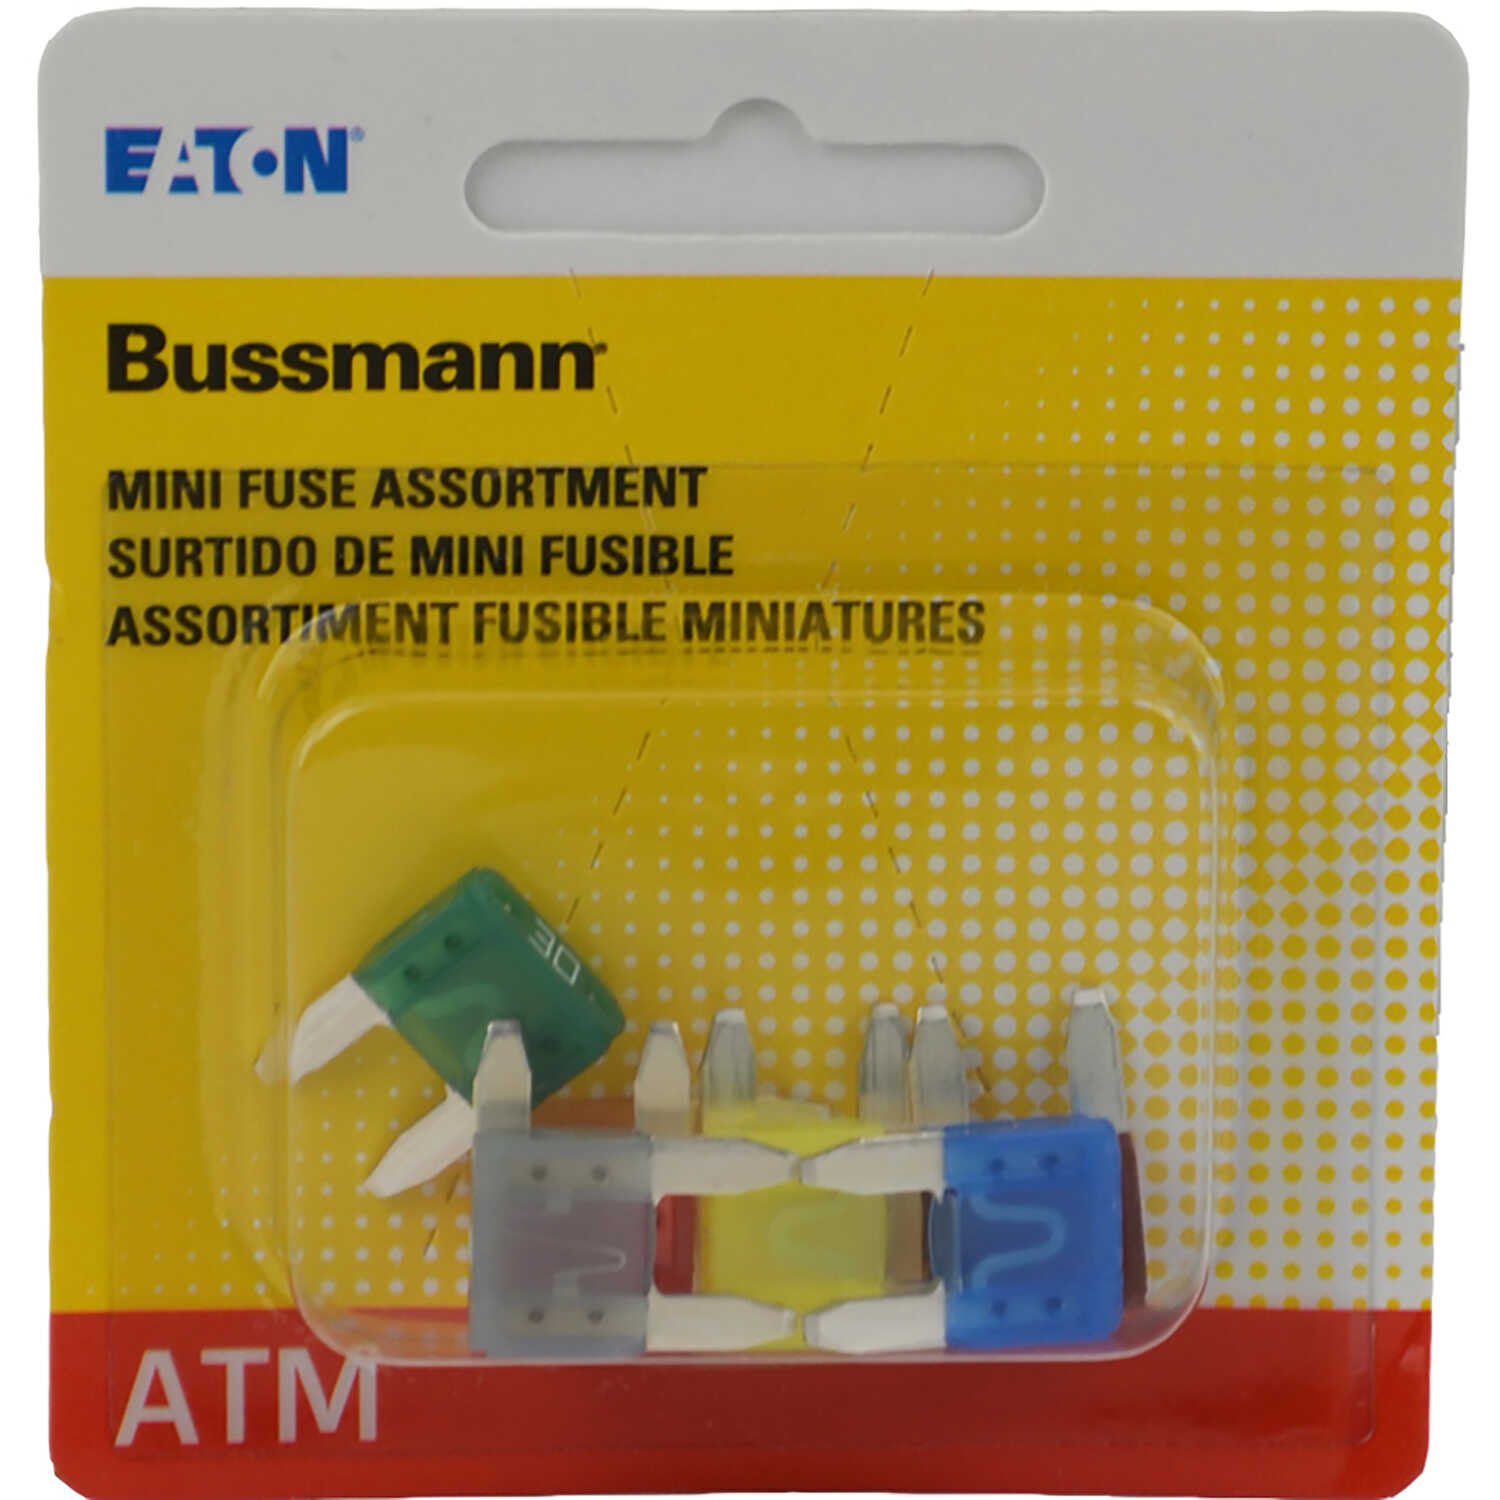 Bussmann  30 amps ATM  Fuse Assortment  8 pk